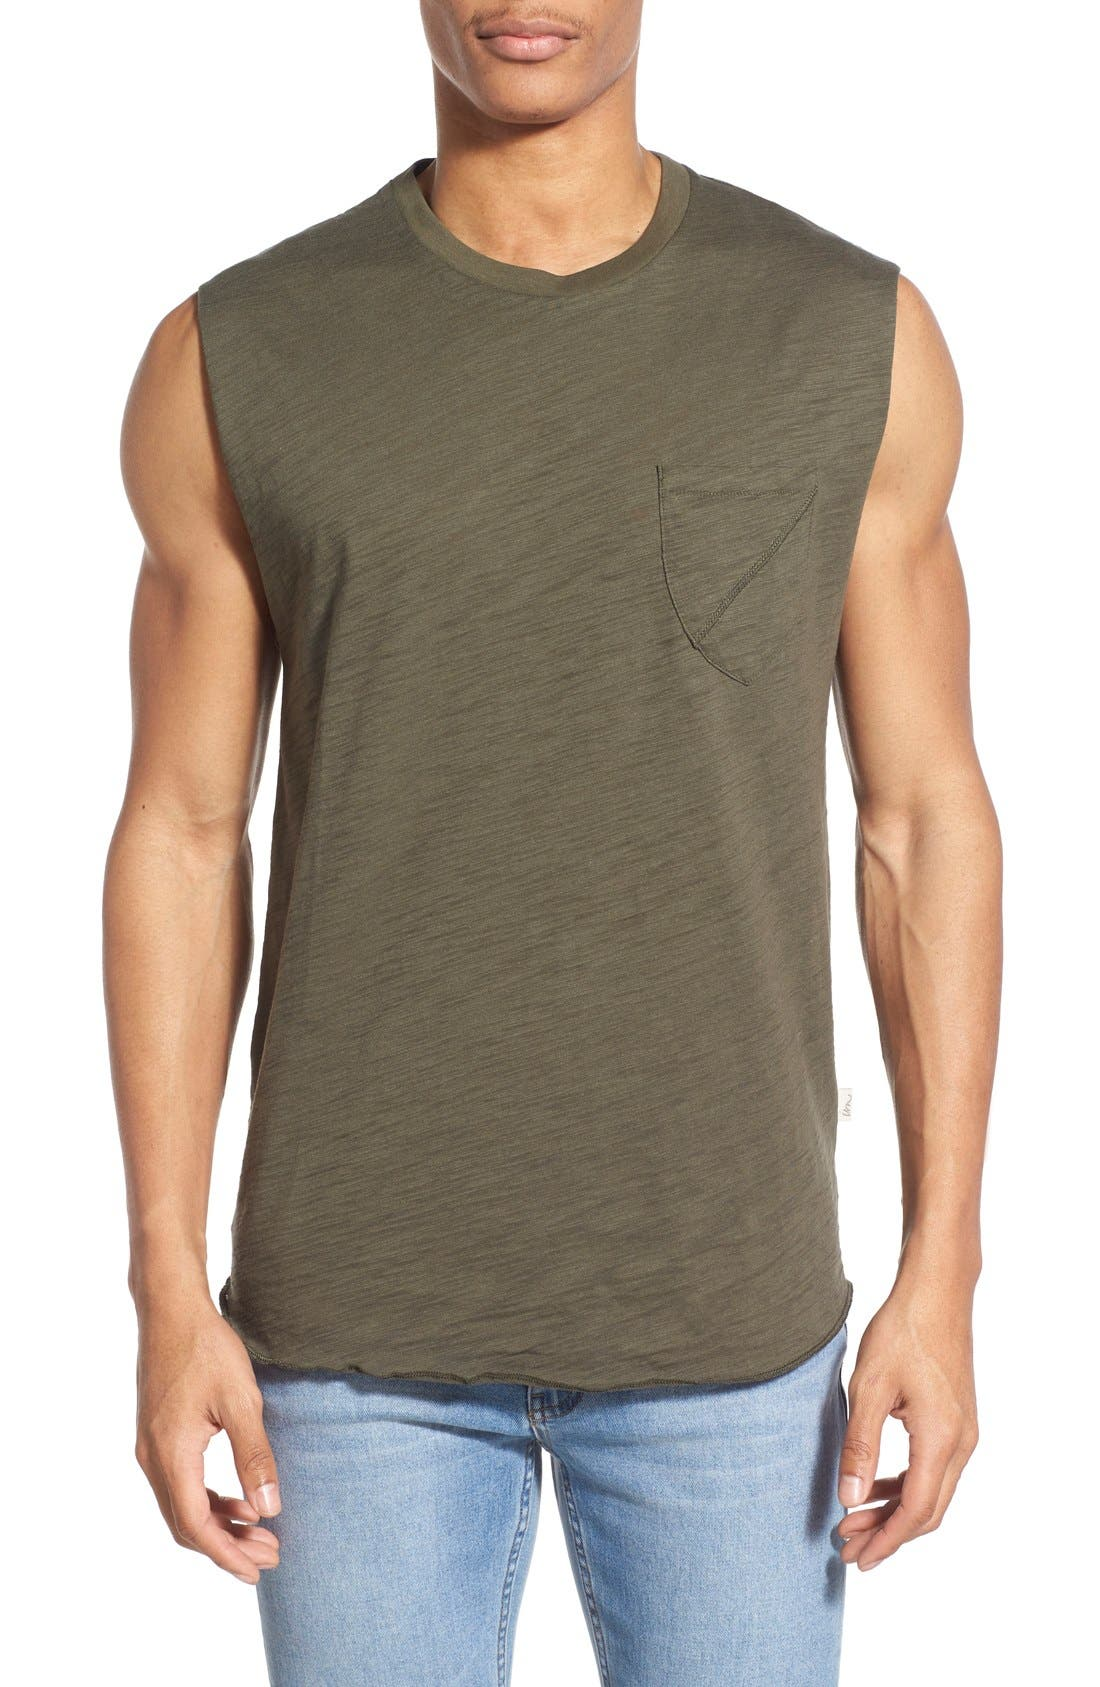 Alternate Image 1 Selected - Imperial Motion 'Garth' Muscle Pocket Tank